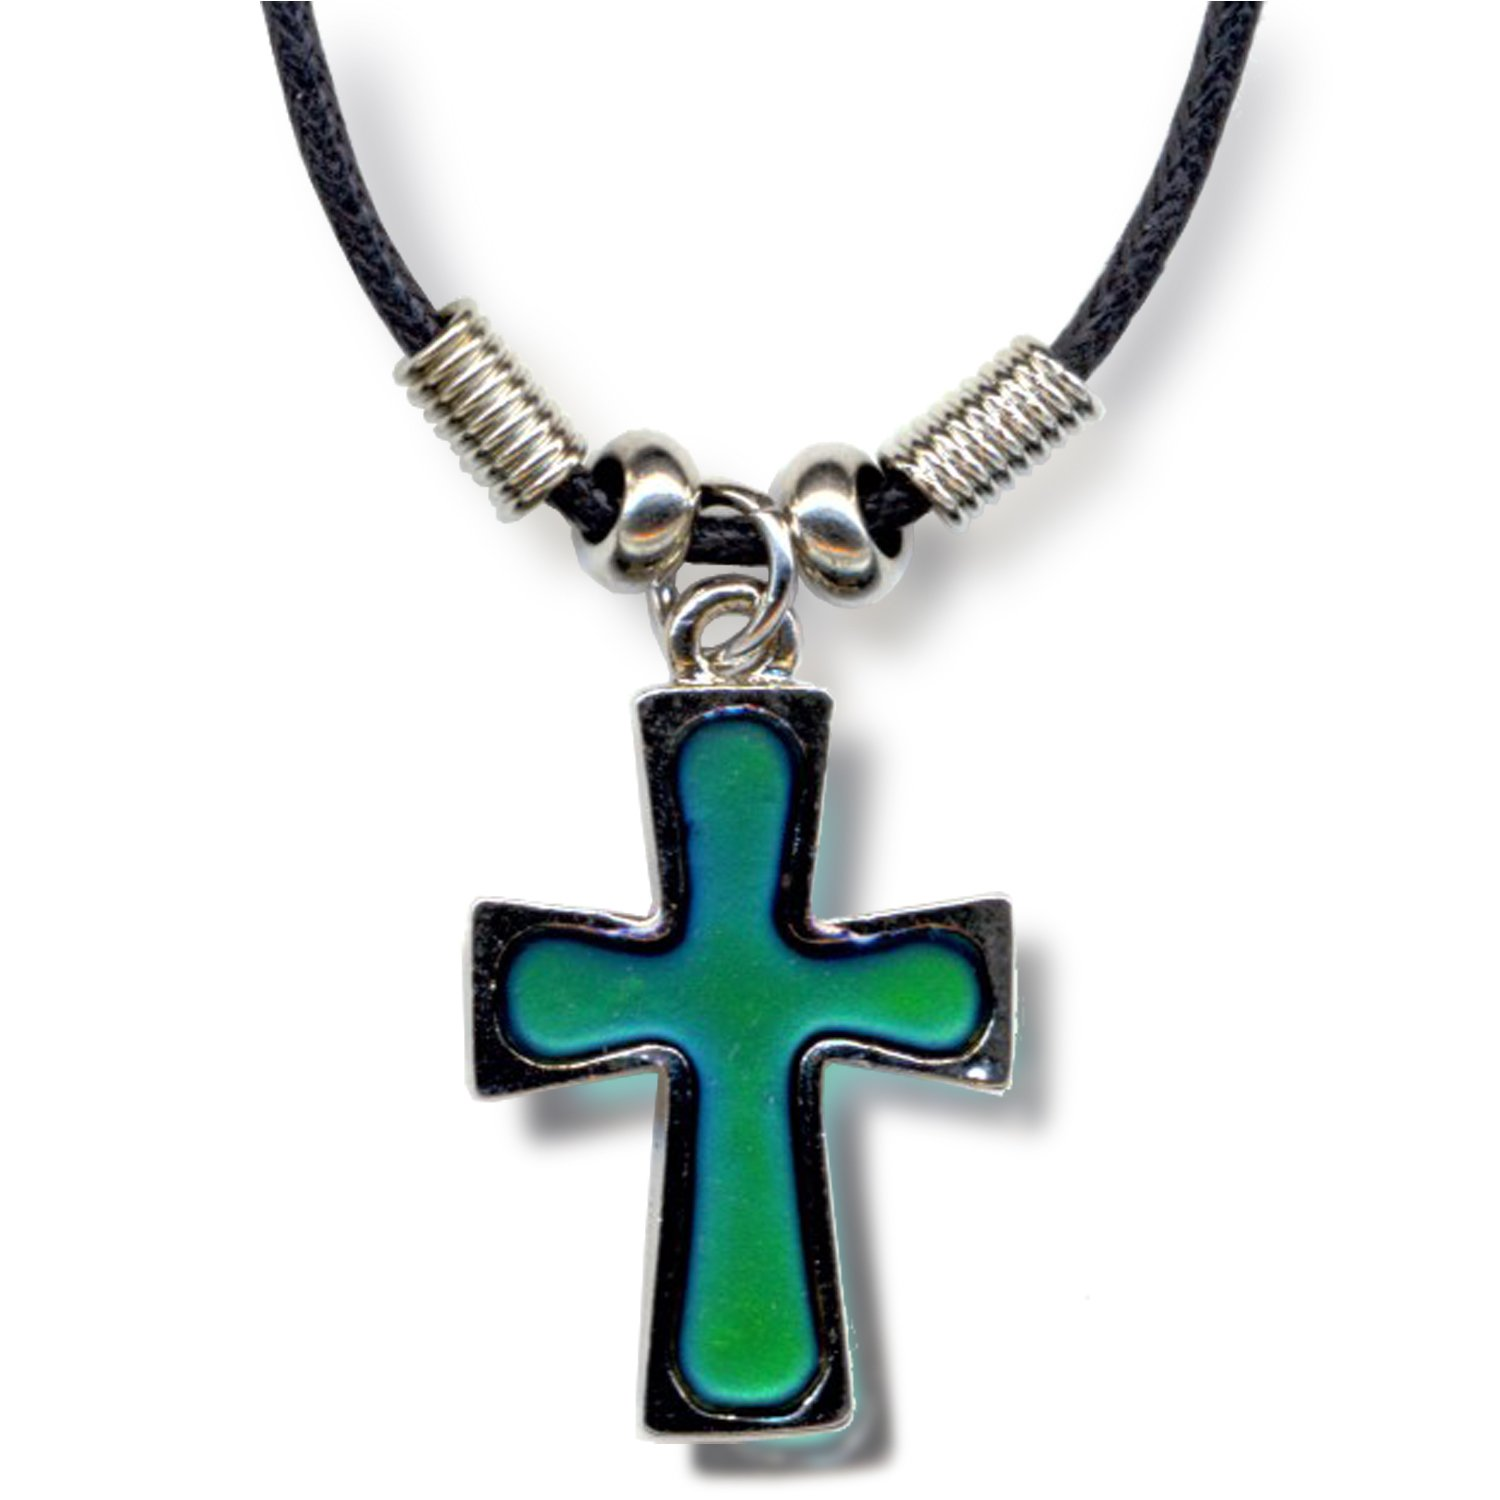 Amazon mood cross necklace crazy color change fun pendant amazon mood cross necklace crazy color change fun pendant necklaces jewelry aloadofball Gallery